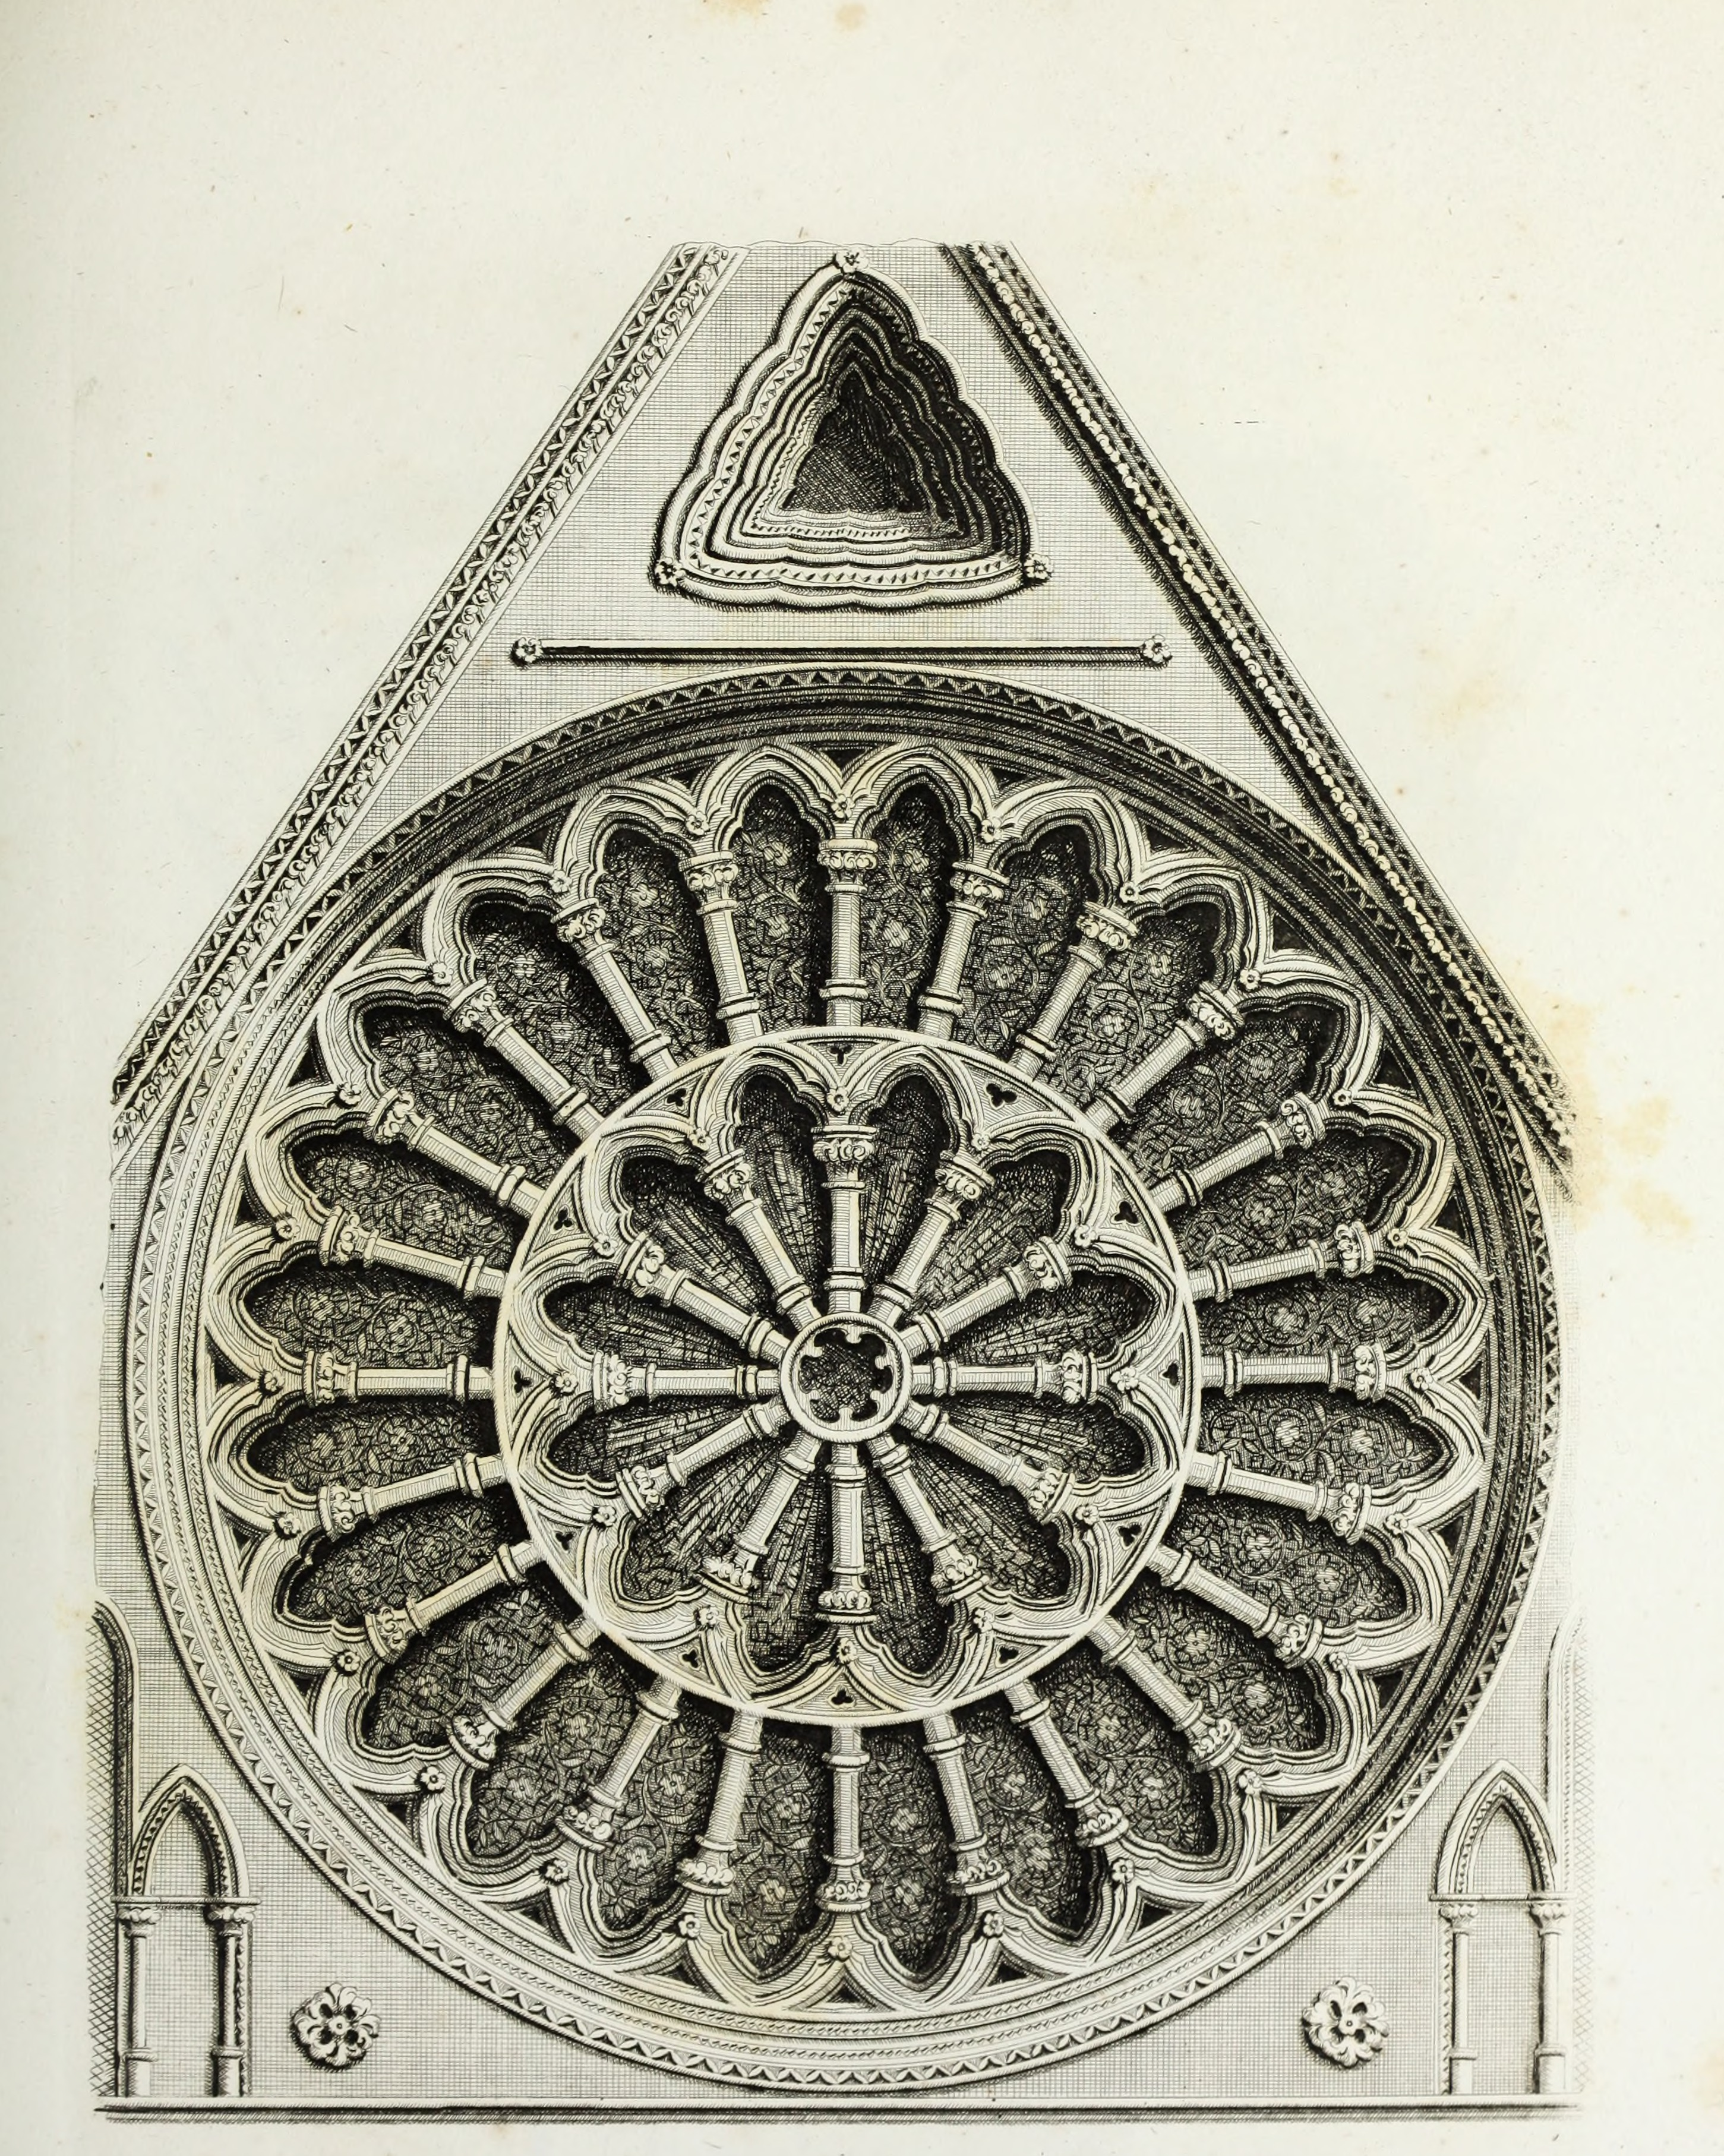 FileGothic Ornaments In The Cathedral Church Of York 1795 14780815014